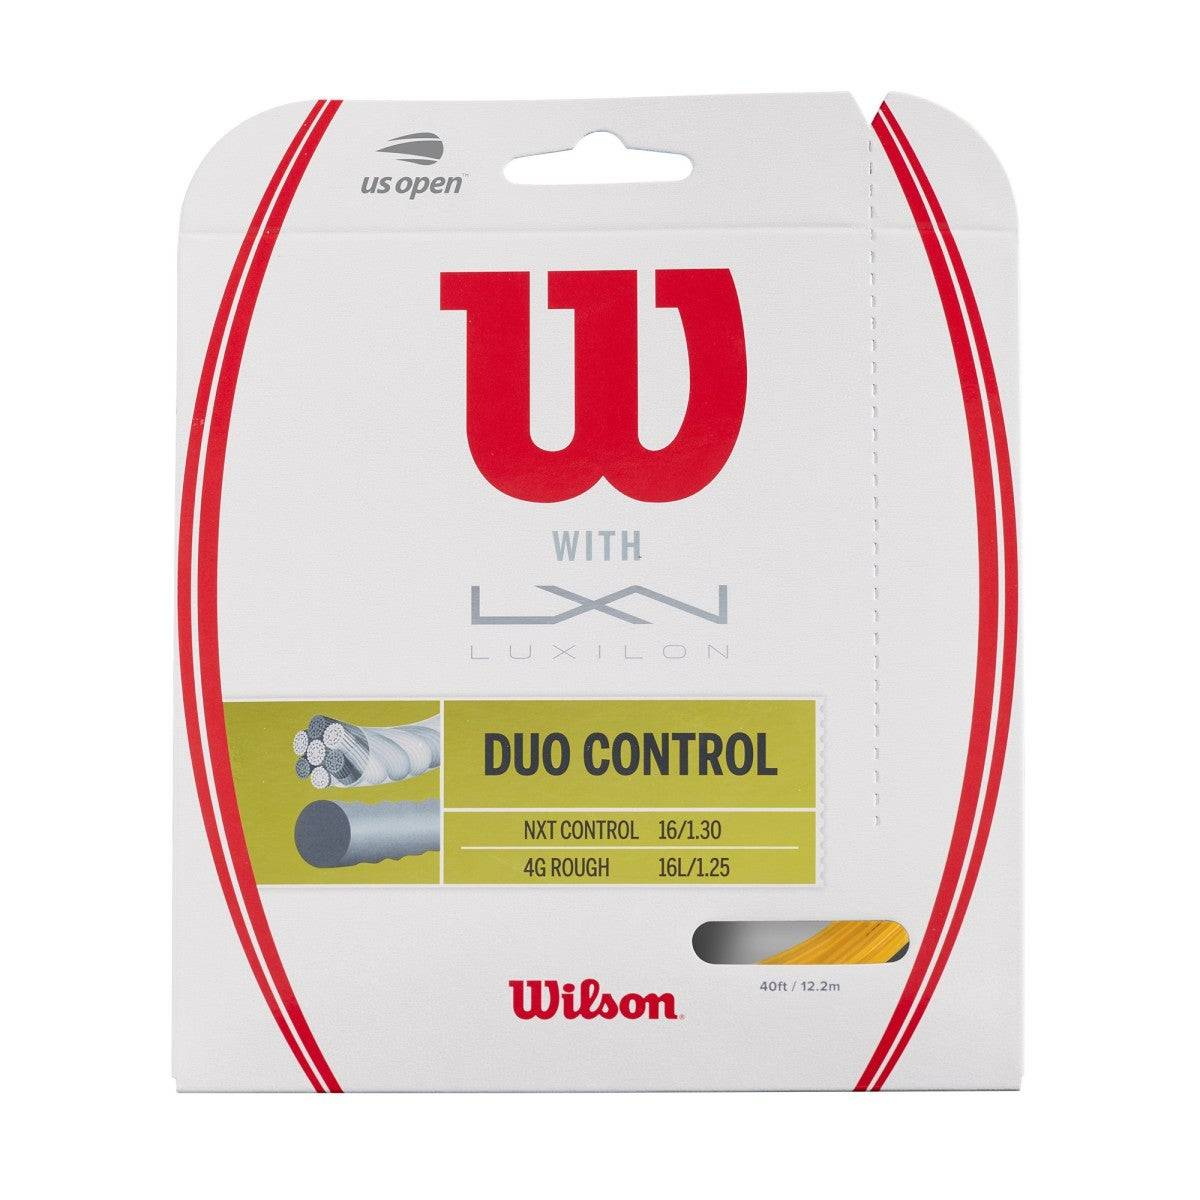 Wilson Duo Control Hybrid Tennis String - Set in Gold  - Unisex - Gold